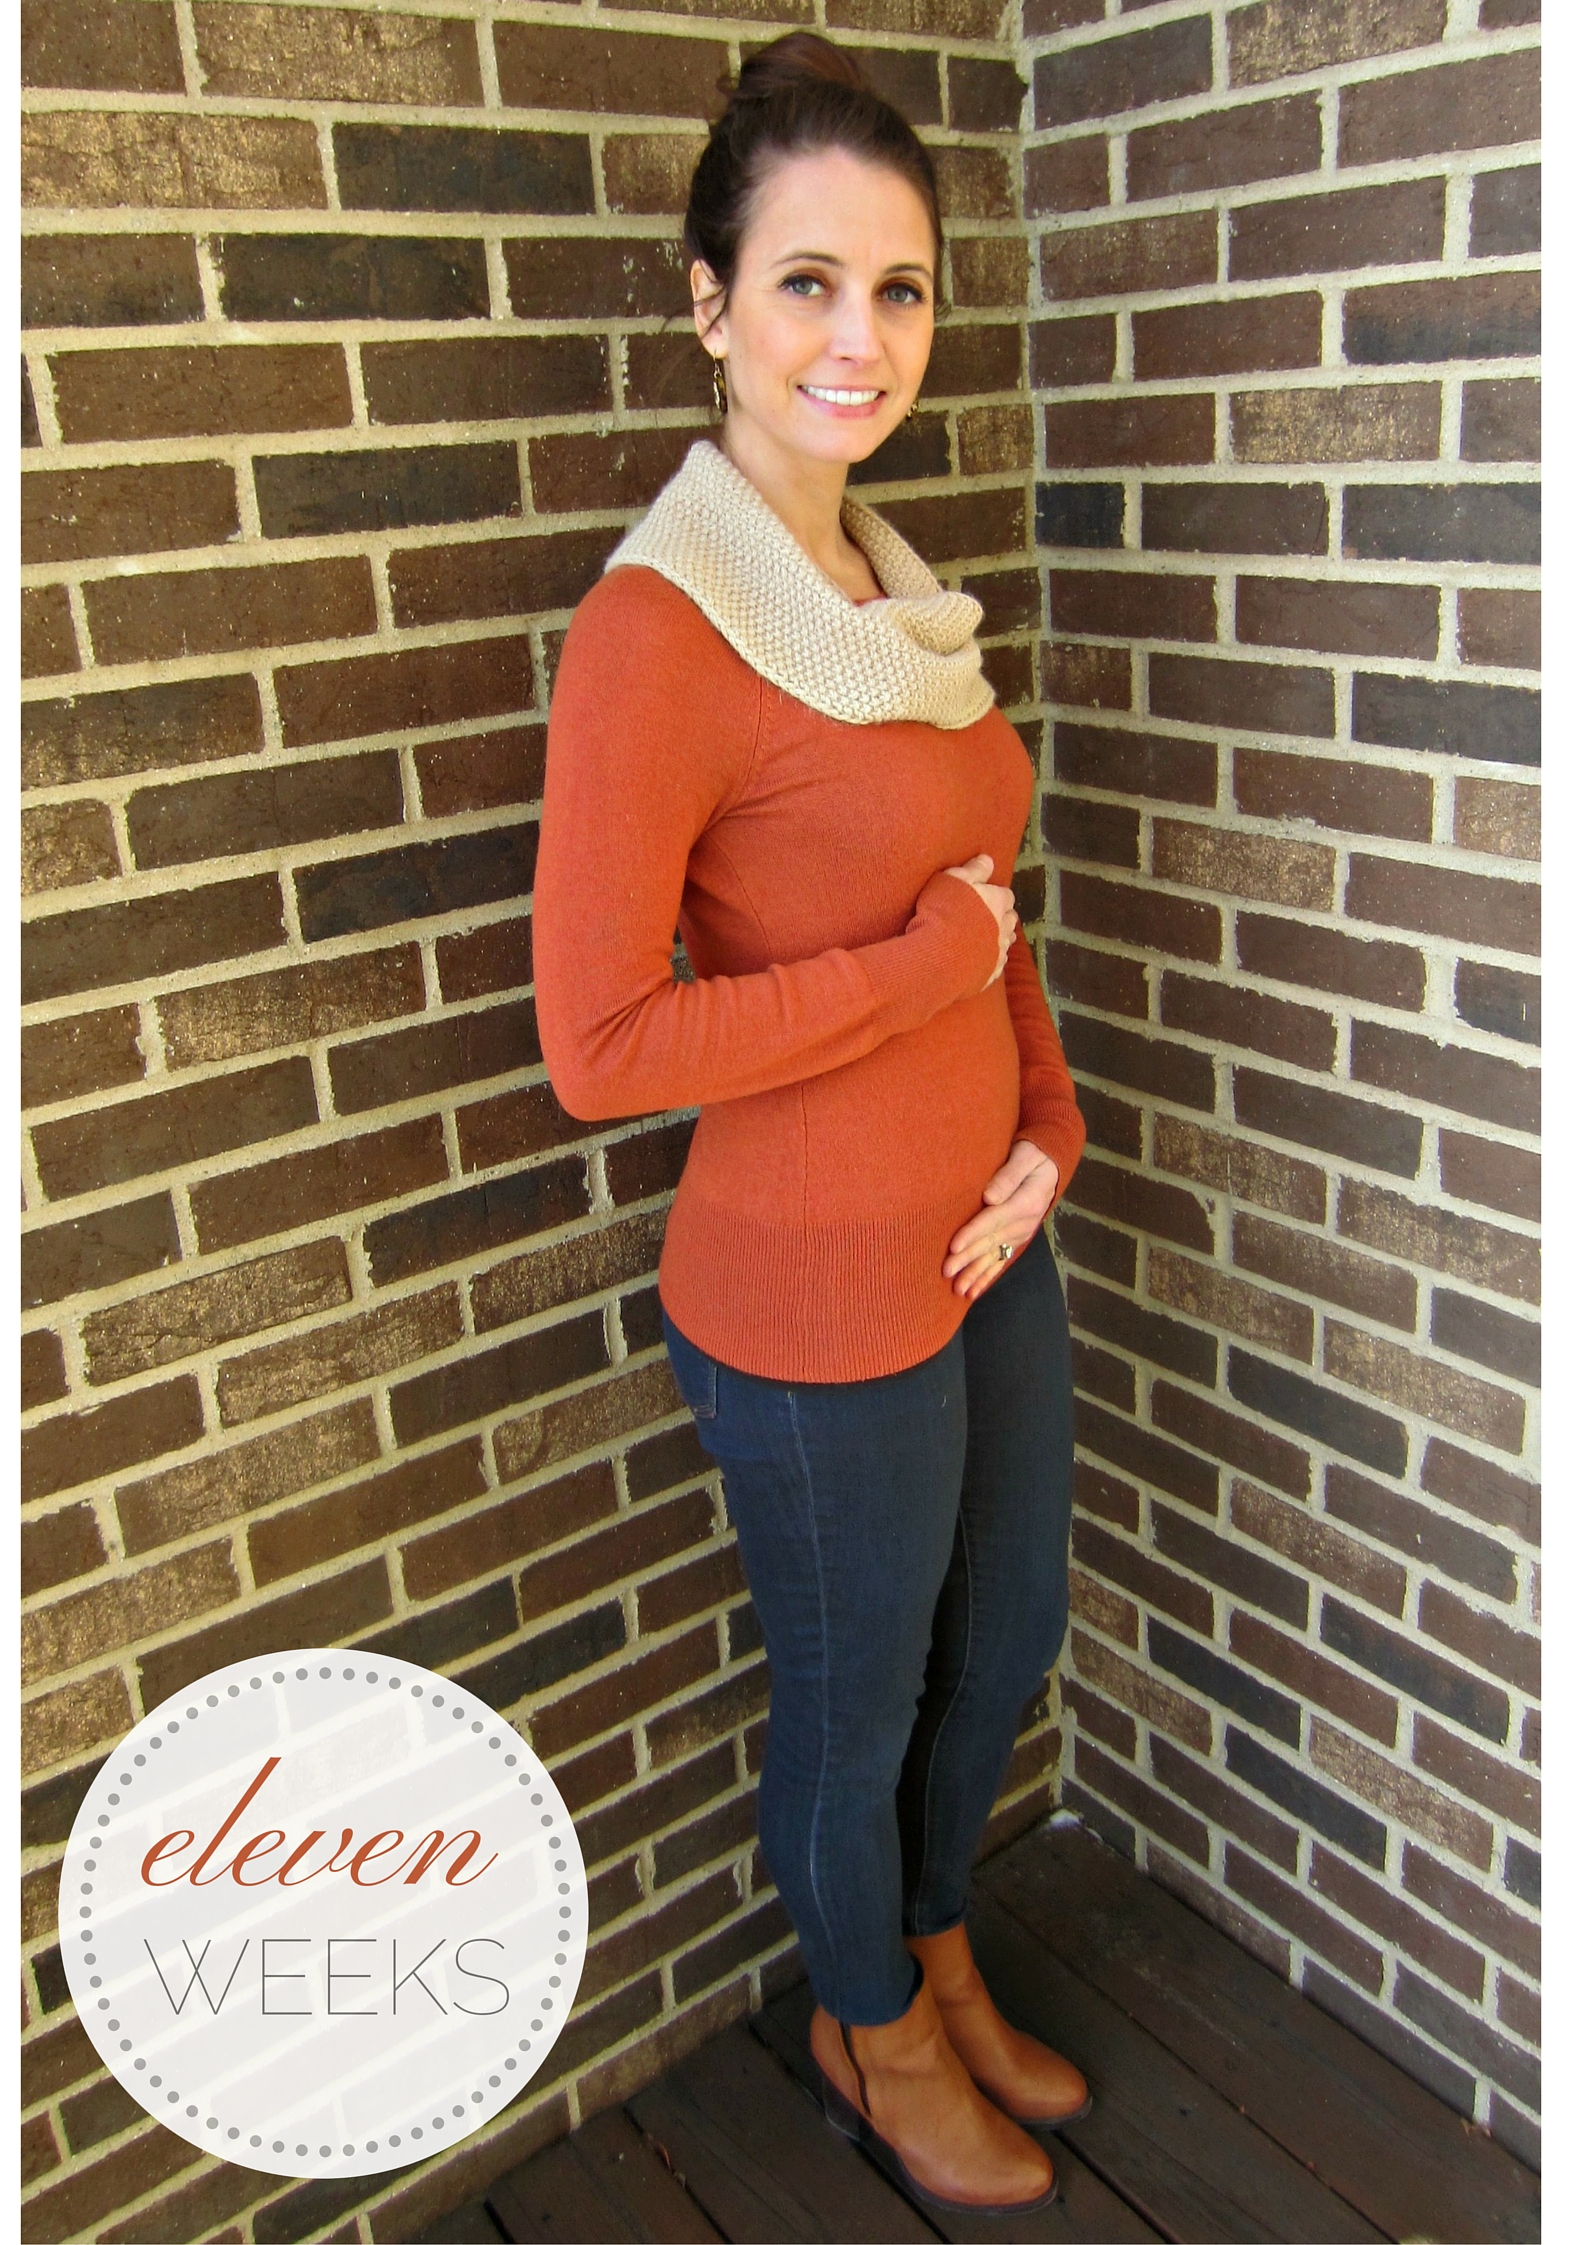 11 weeks pregnancy picture